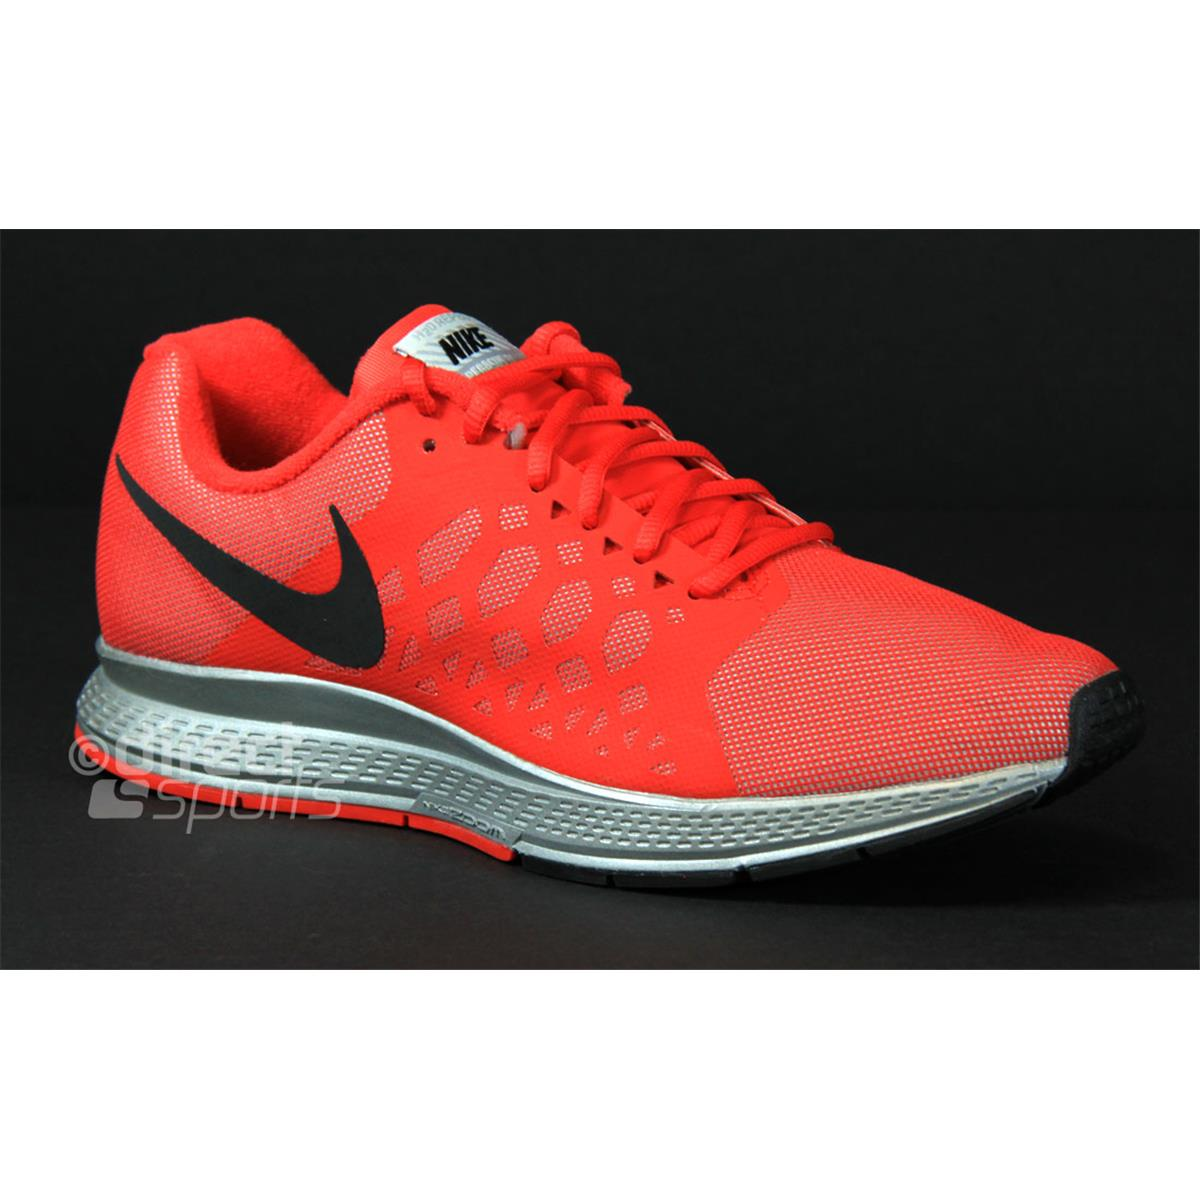 nike air zoom pegasus 31 flash ladies running shoe